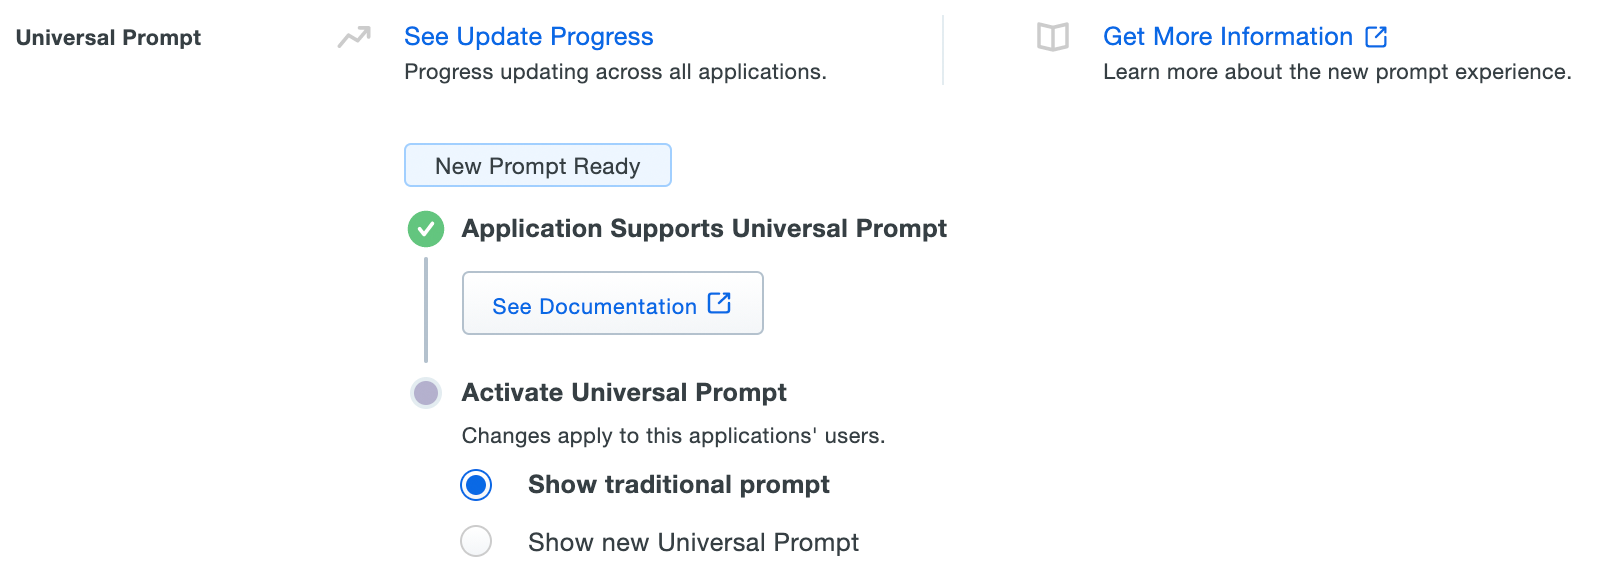 Universal Prompt Info - Application Ready for Universal Prompt